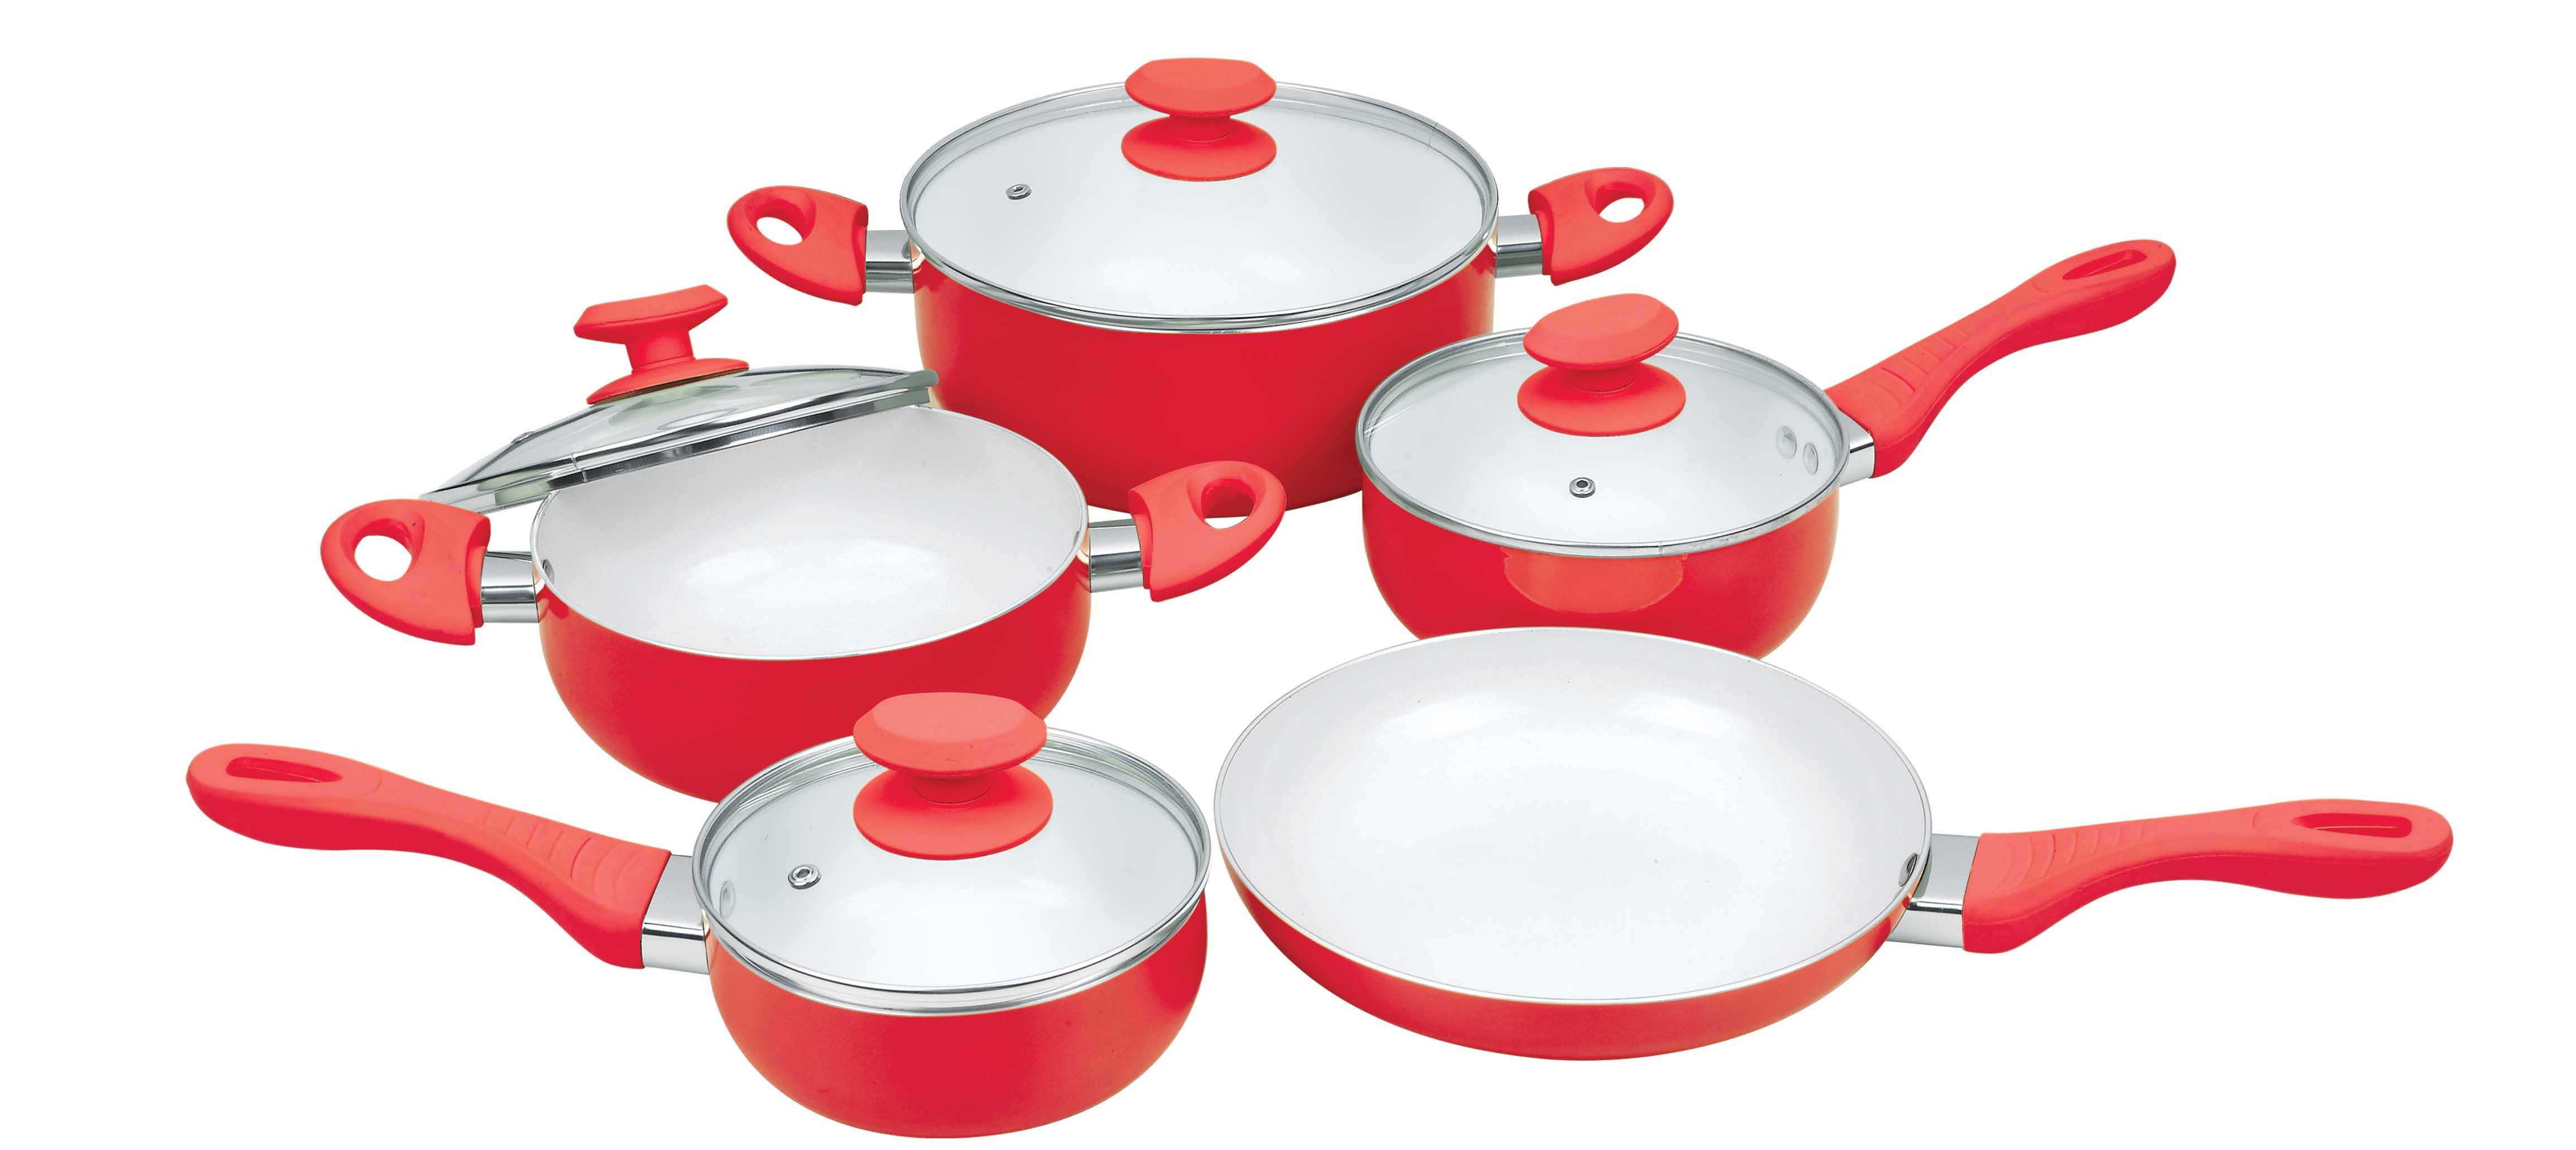 Ceramica Pan Set4 2015 Ceramic Cookware Set Models